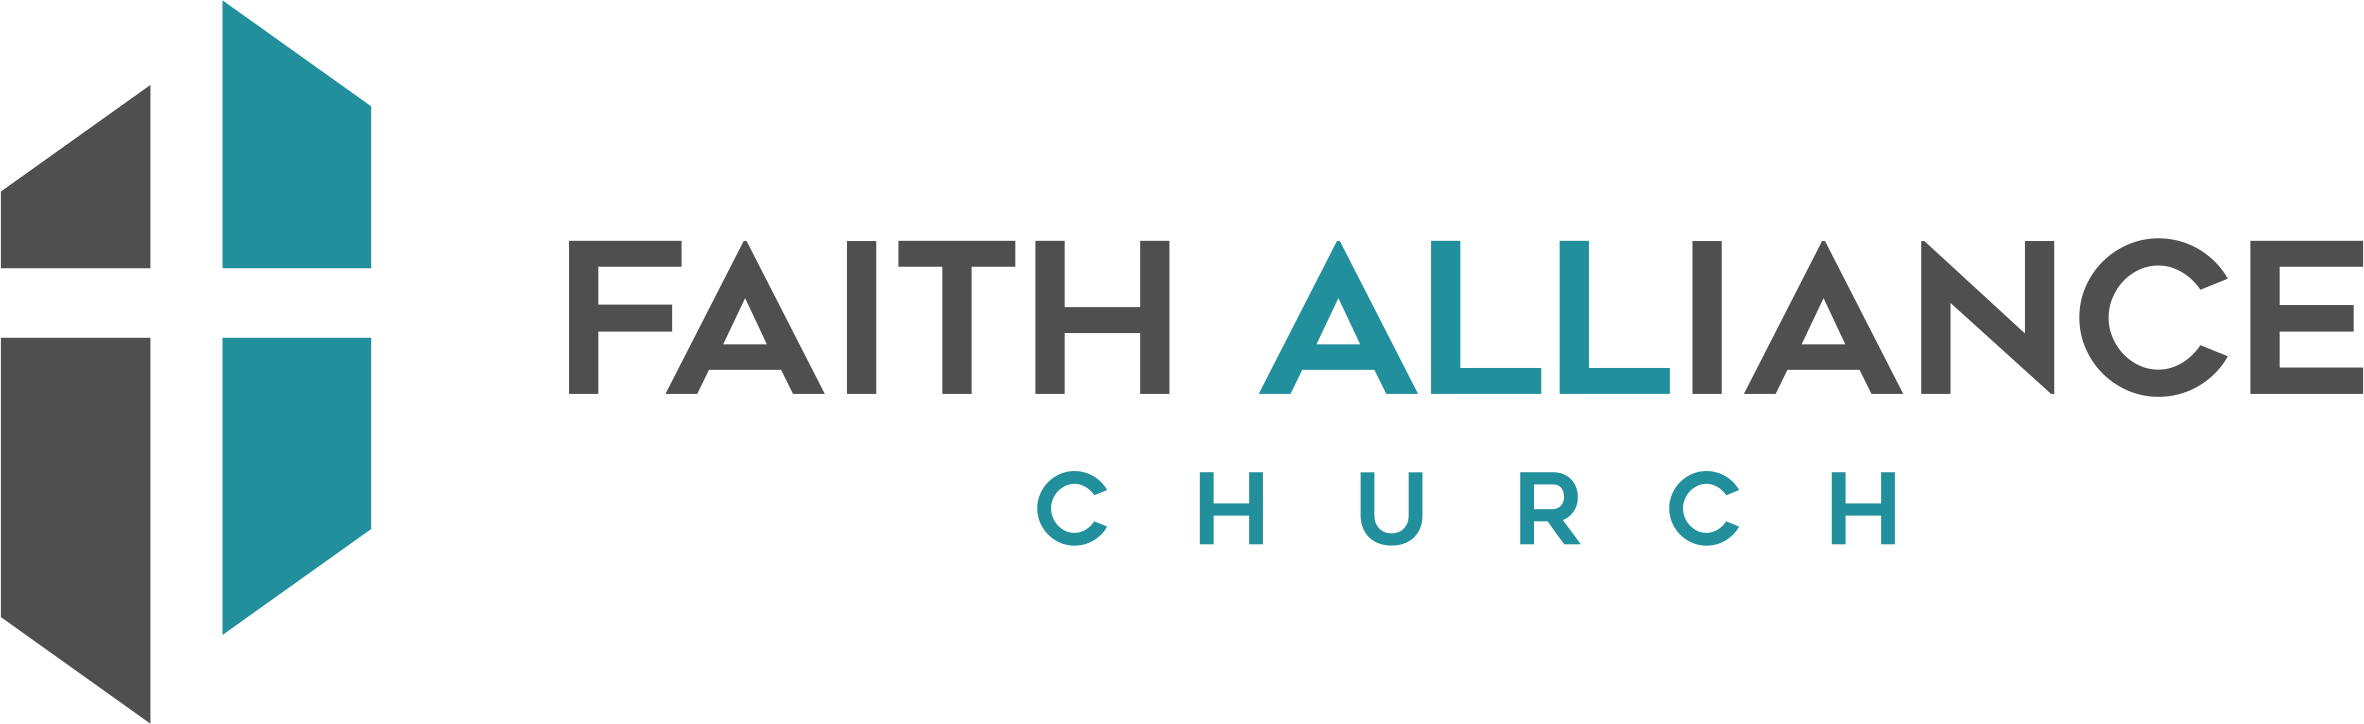 Design a great logo for a church looking toward the future